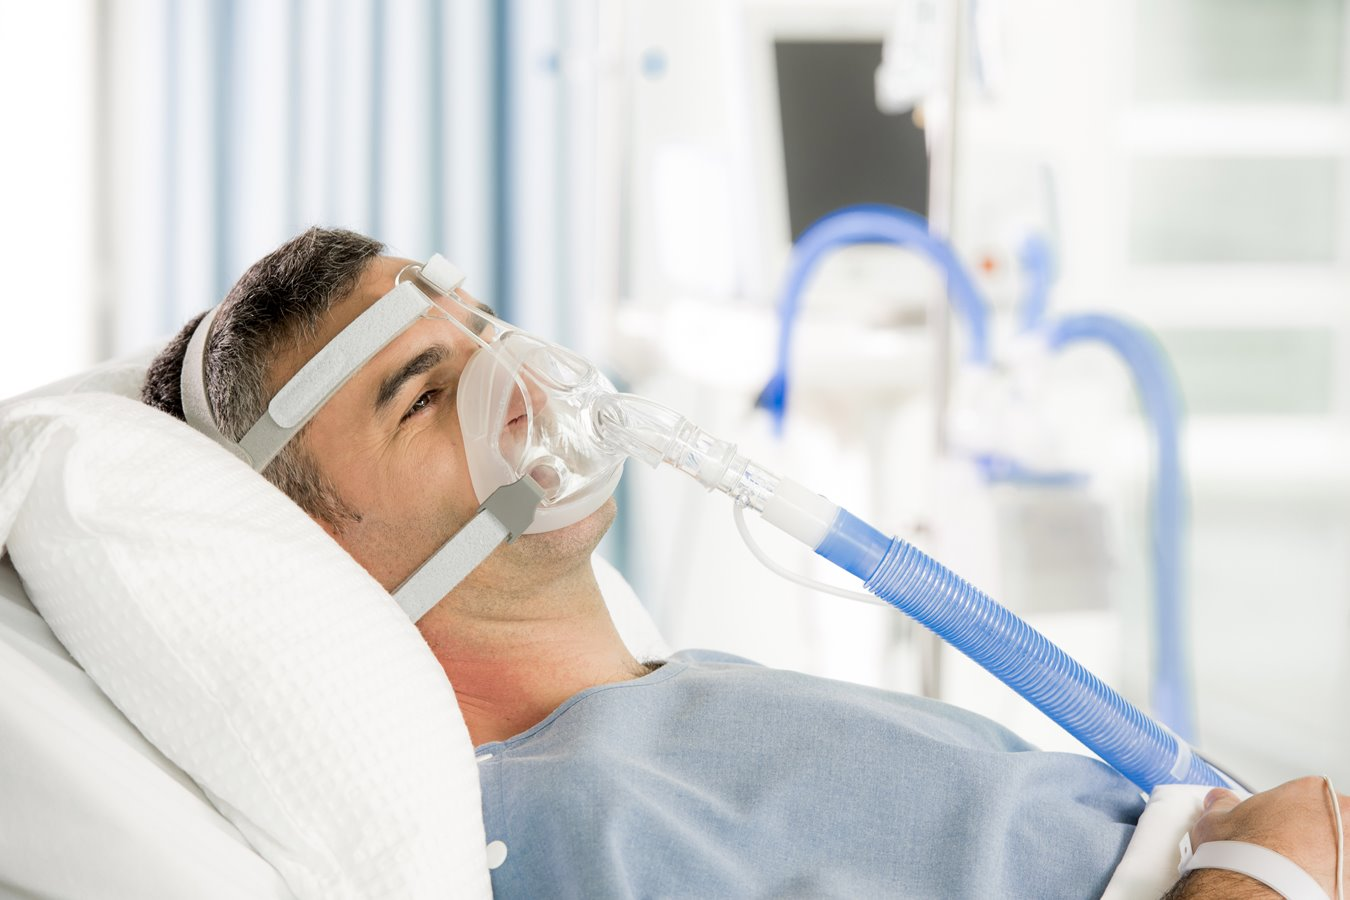 Patient using F&P 850 Humidifier while in the hospital